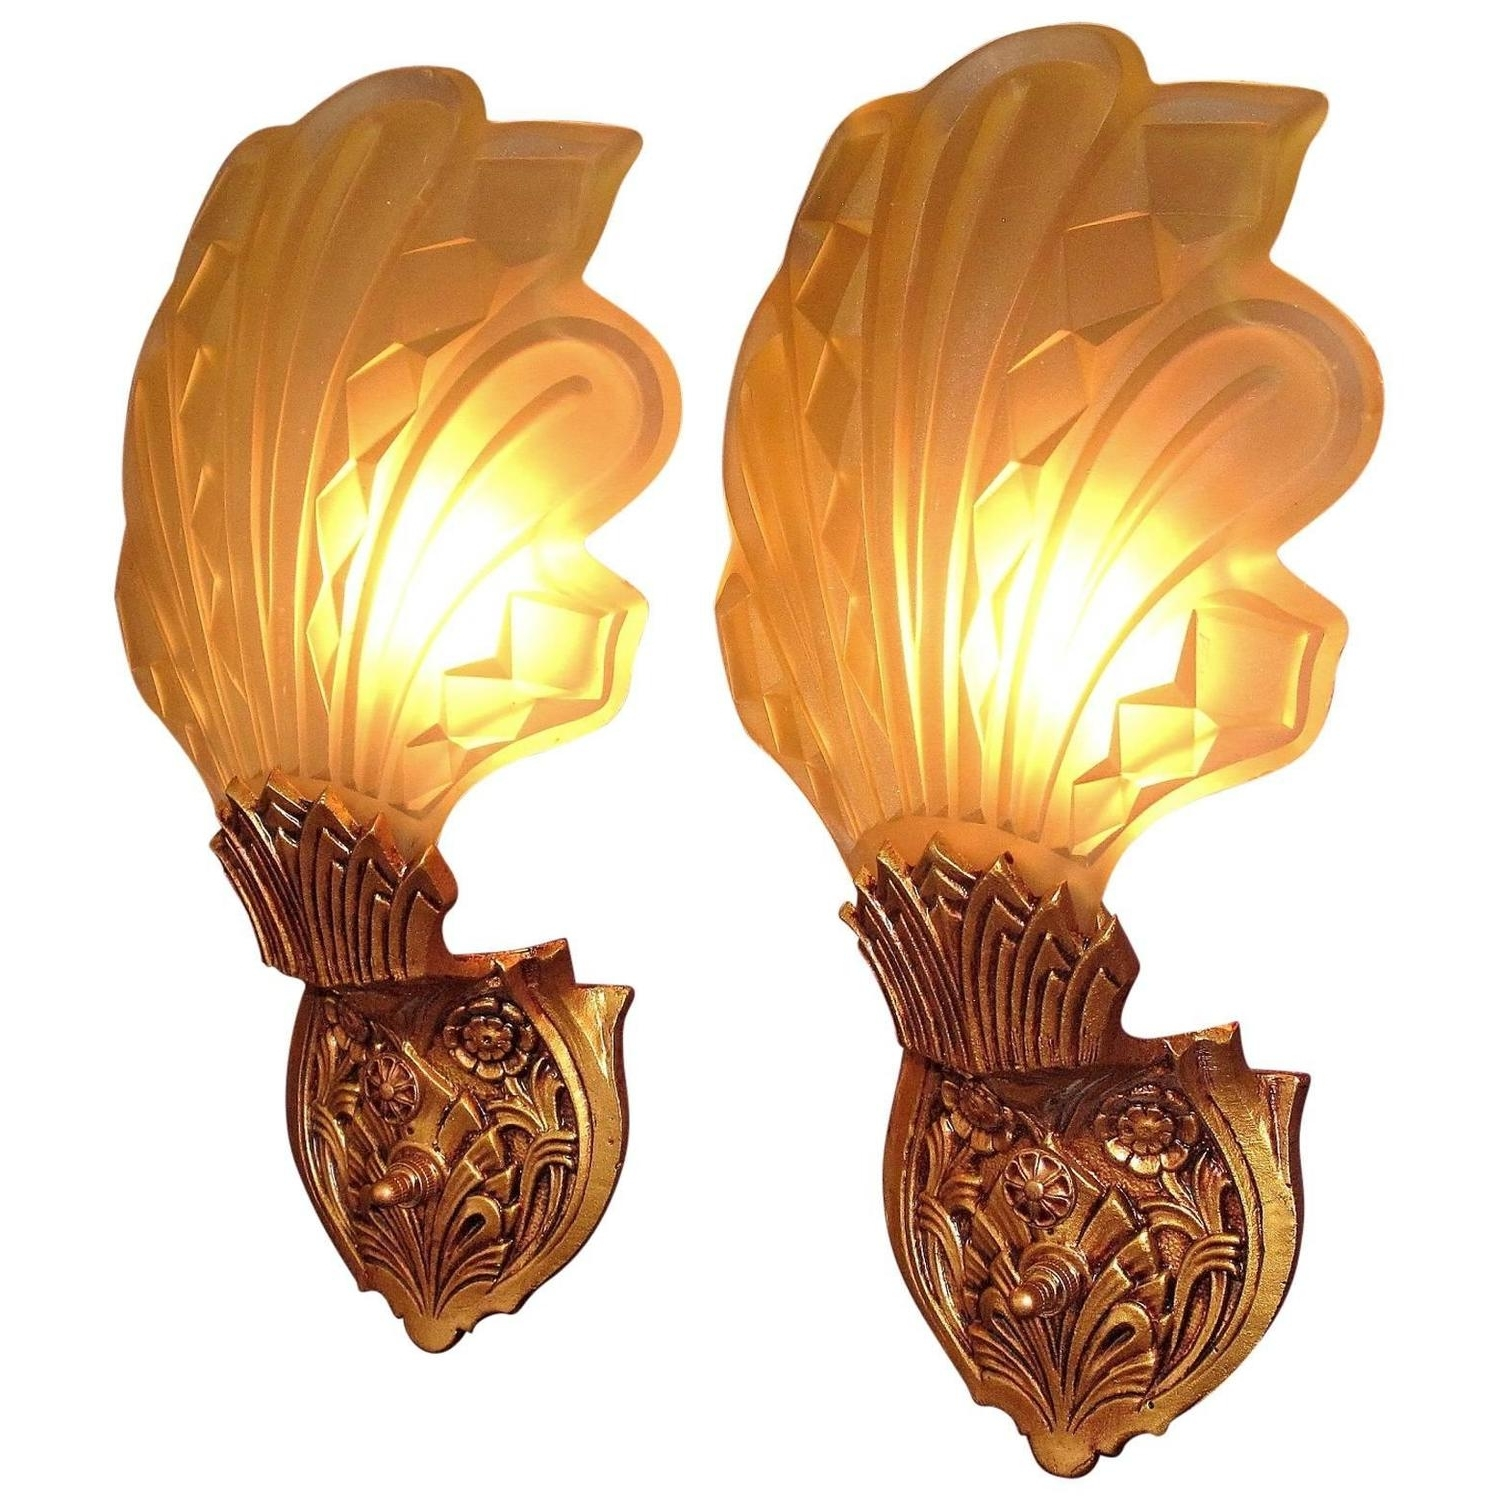 Well Known Late 1920S Early 1930S Art Deco Wall Sconces For Sale At 1Stdibs Pertaining To Art Deco Wall Sconces (View 17 of 20)